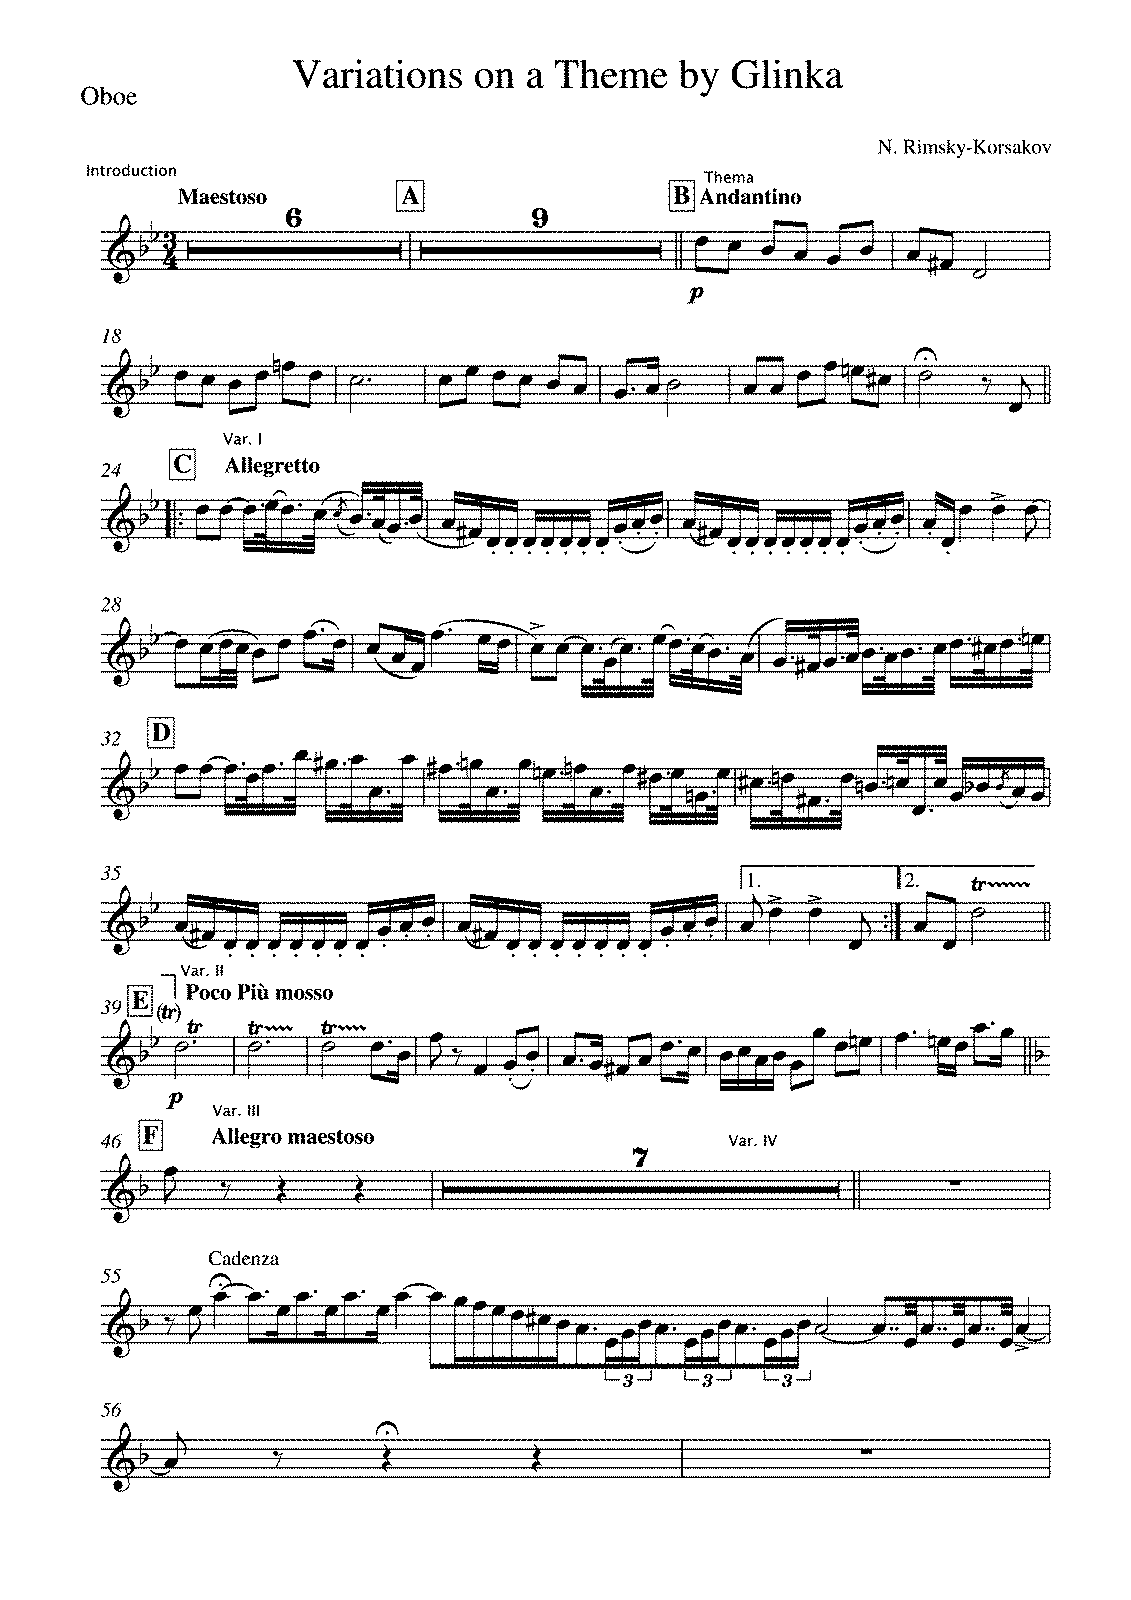 PMLP72321-Variations on a Theme by Glinka -OBOE- Oboe.pdf